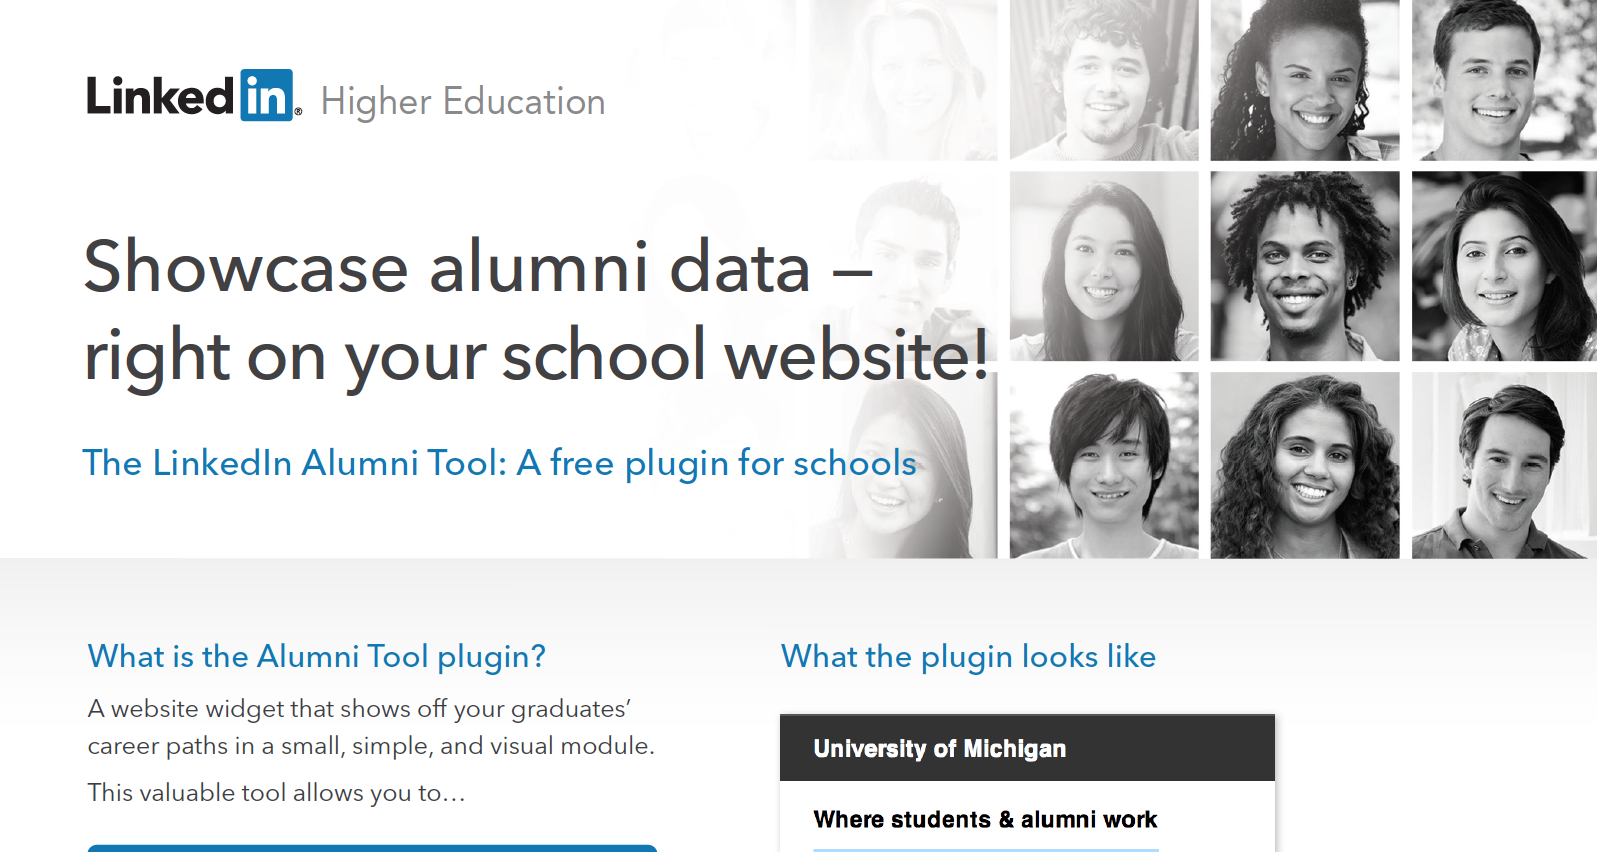 Alumni Tool Plugin: One-Page Overview